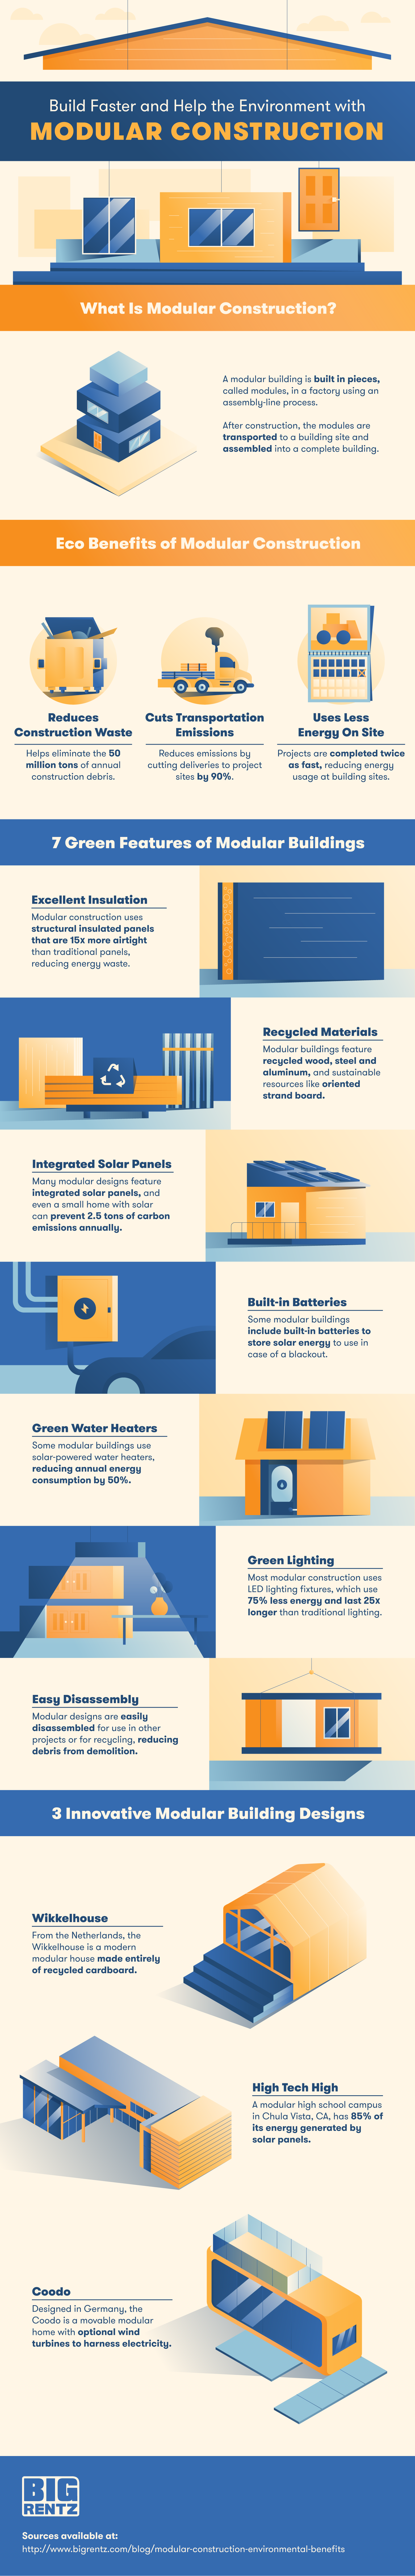 Modular construction has many benefits, explained in this infographic.